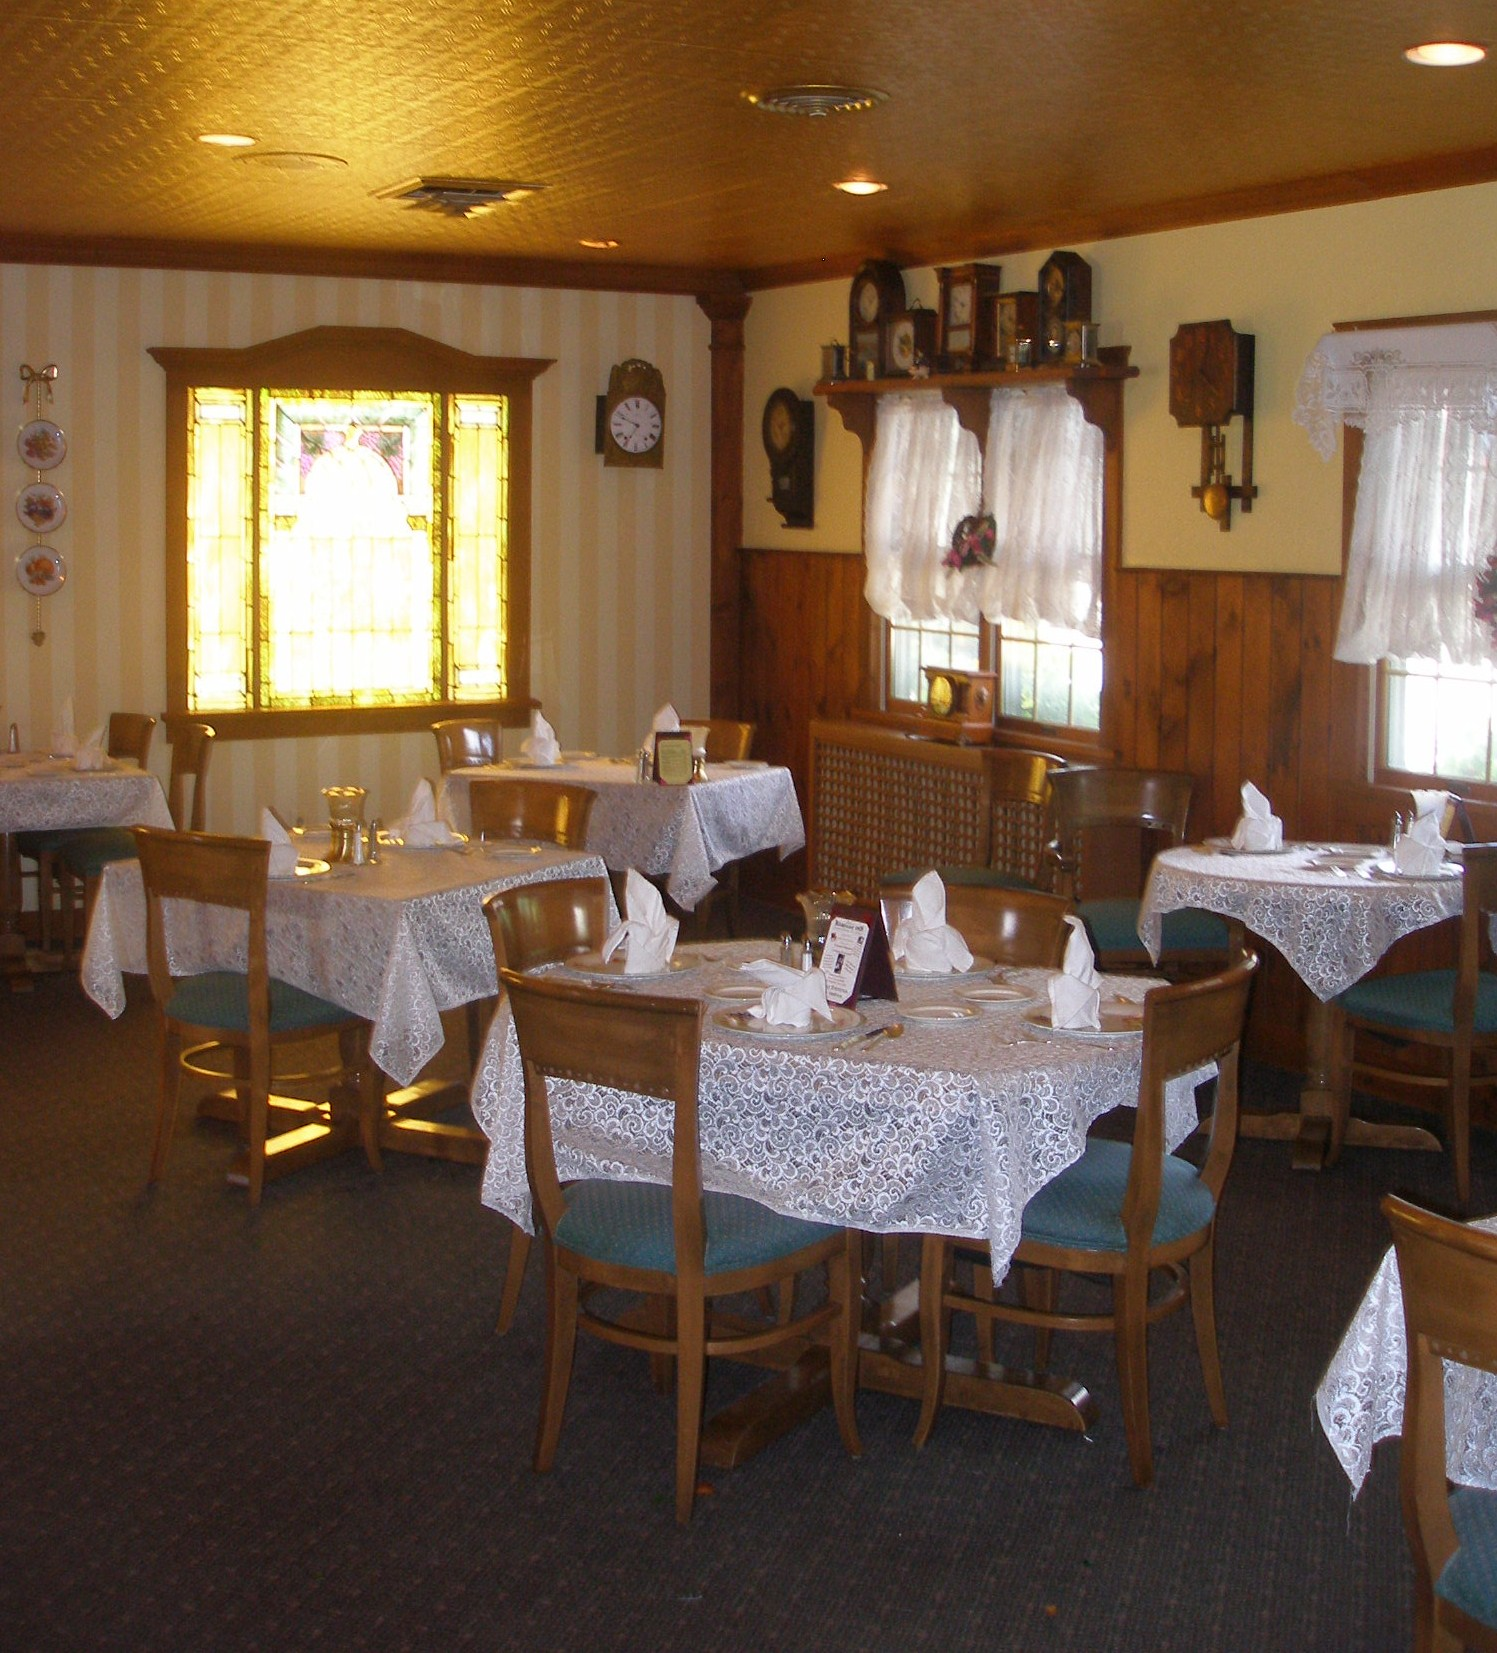 Photo #3 Second Space at John's Harvest Inn